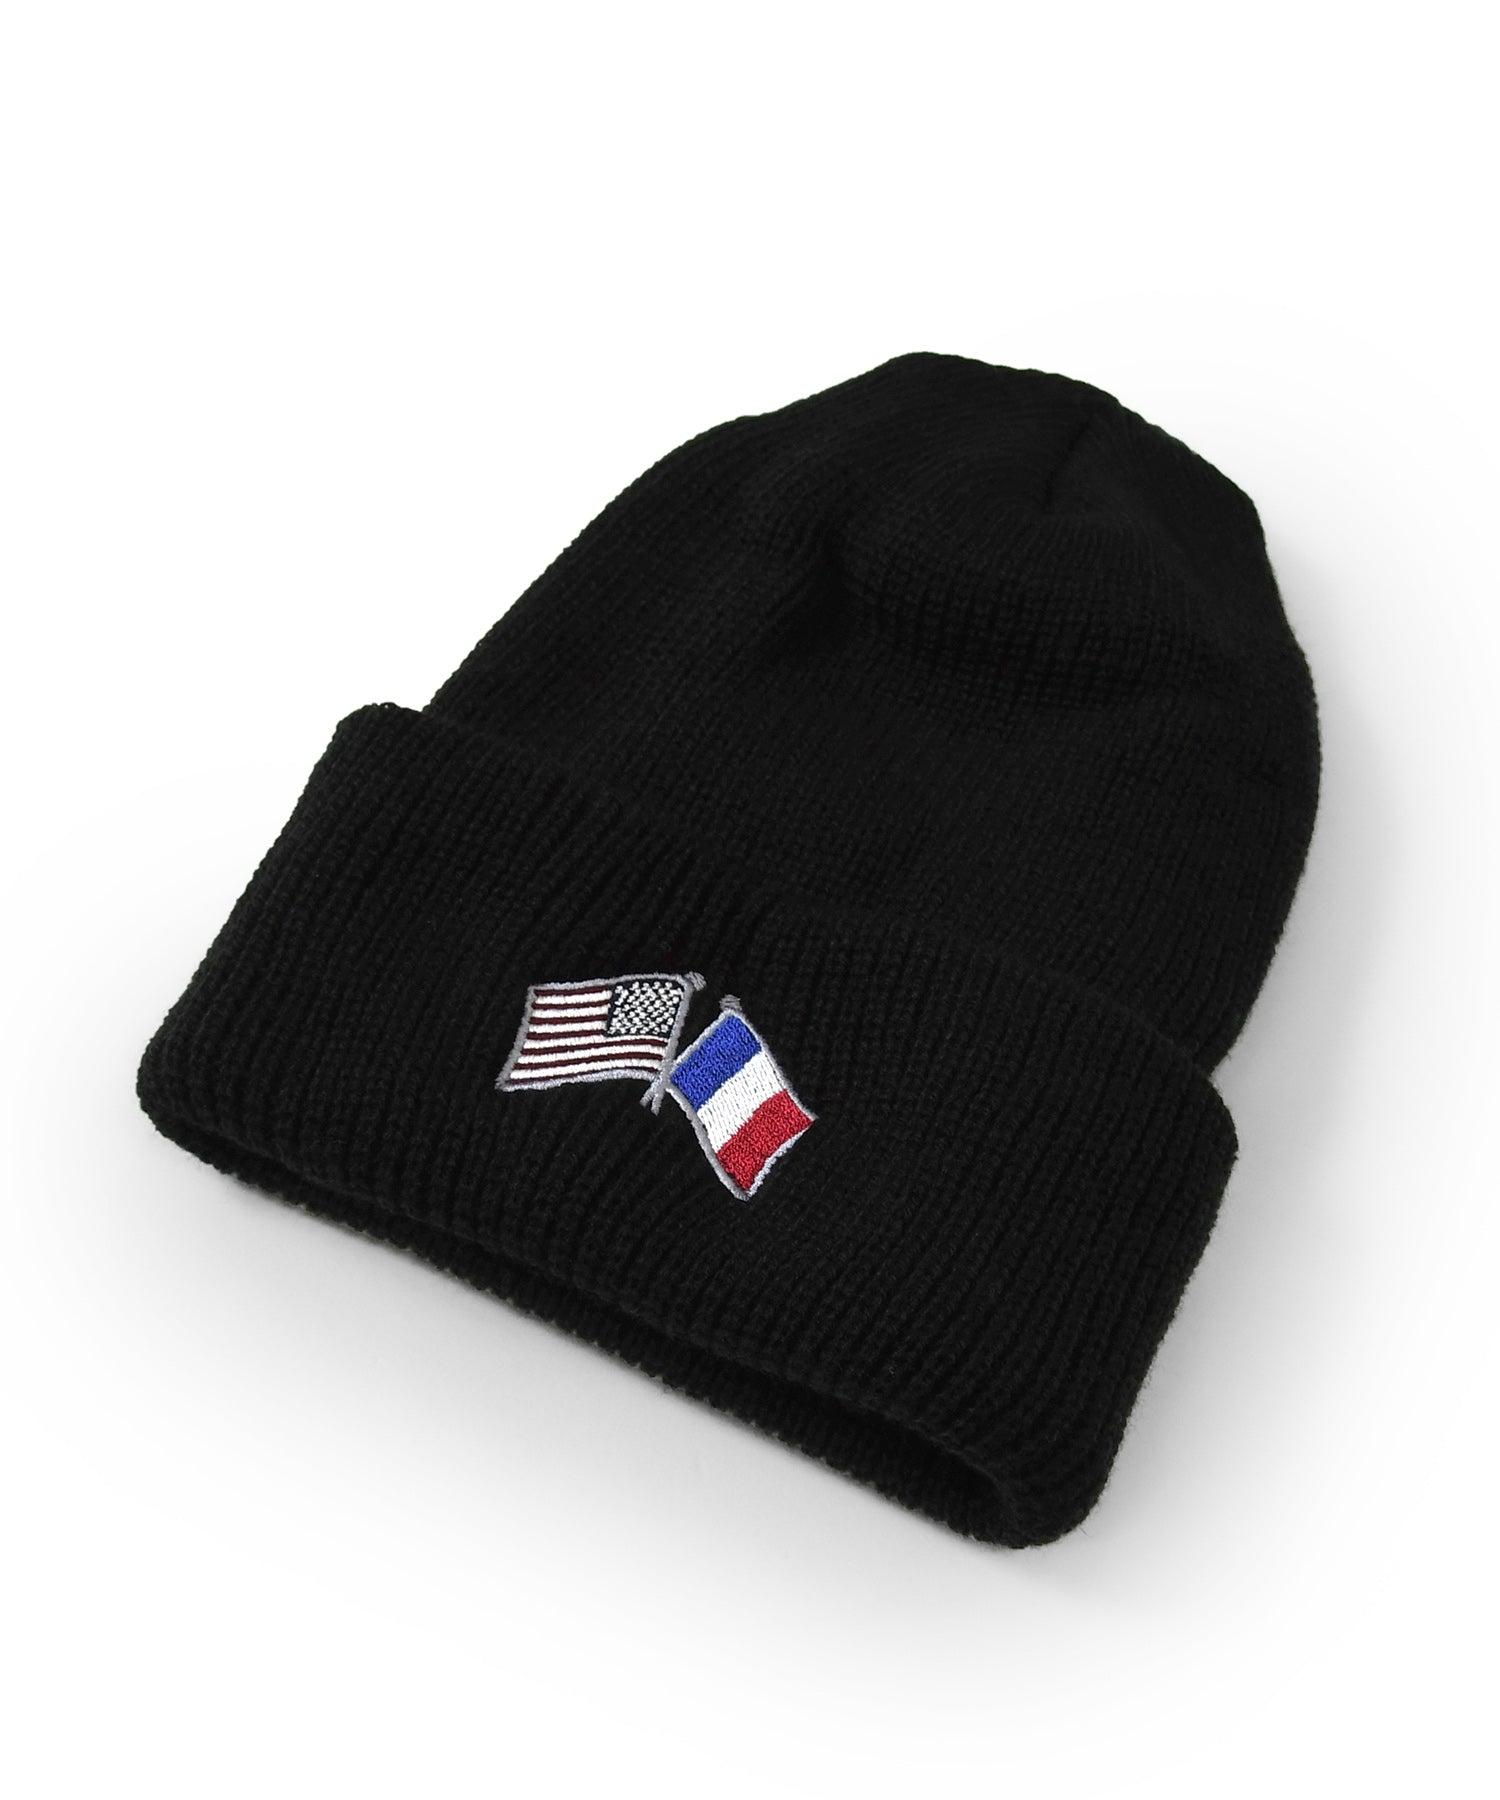 Lafayette CROSS FLAG LONG BEANIE LS201405 BLACK